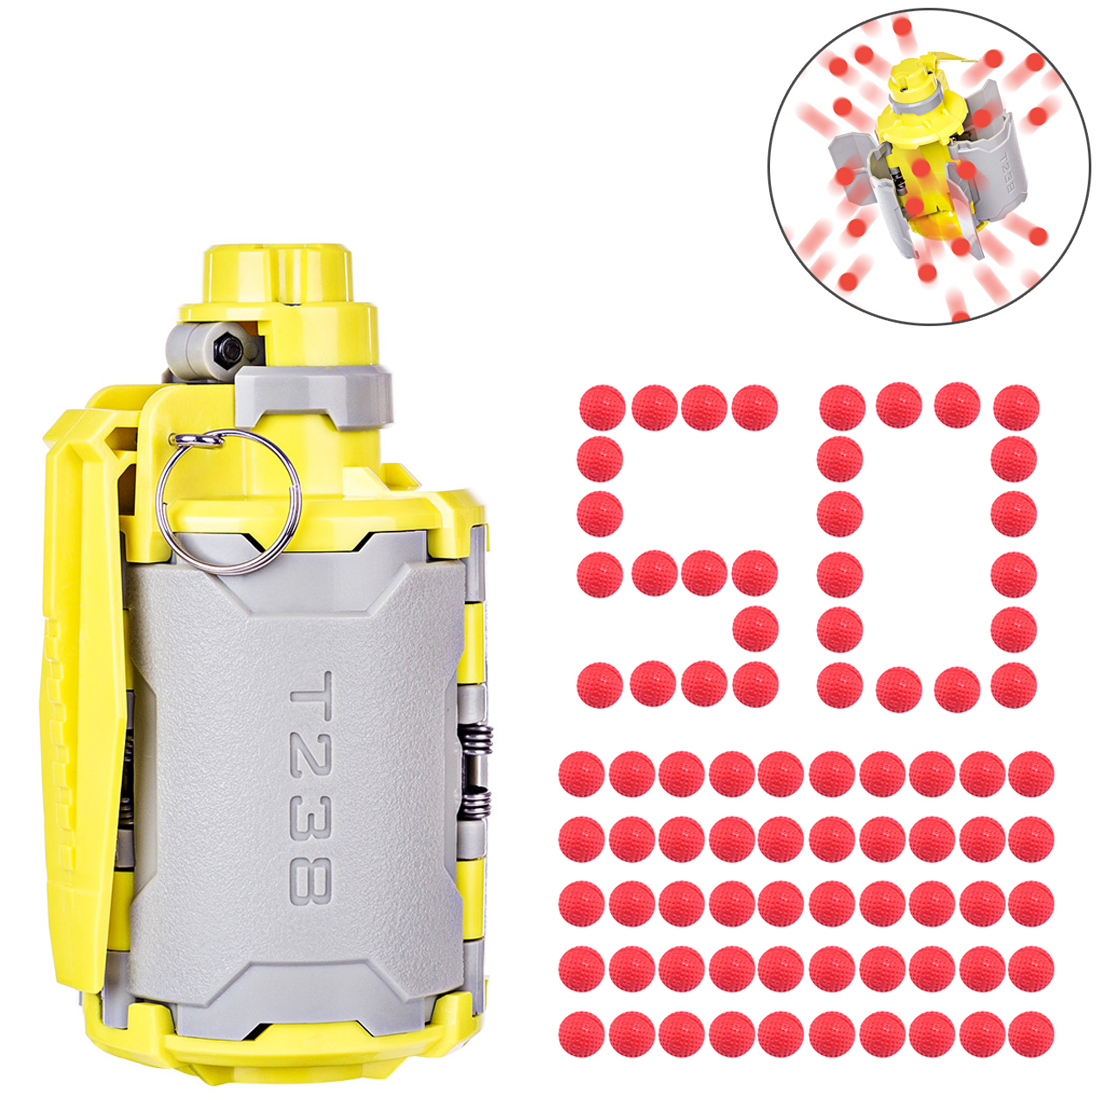 <font><b>T238</b></font> <font><b>V2</b></font> Large Capacity Bomb Toy with Time-delayed Function 10 Round Soft Foam Bullets for Games Gel Ball BBs Airsoft Wargame image